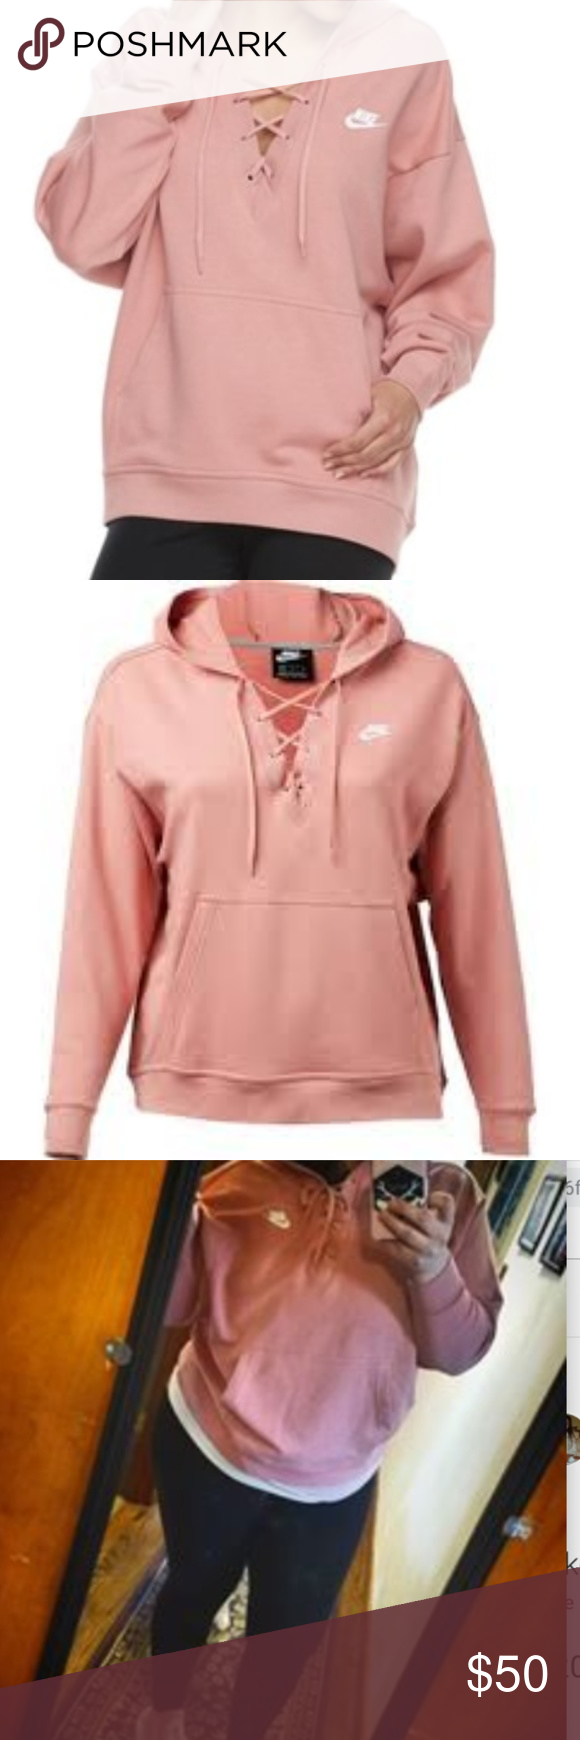 Nike Pink Oversized Xl Pink Lace Up Peasant Hoodie Clothes Design Oversize Hoodie Hoodies [ 1740 x 580 Pixel ]